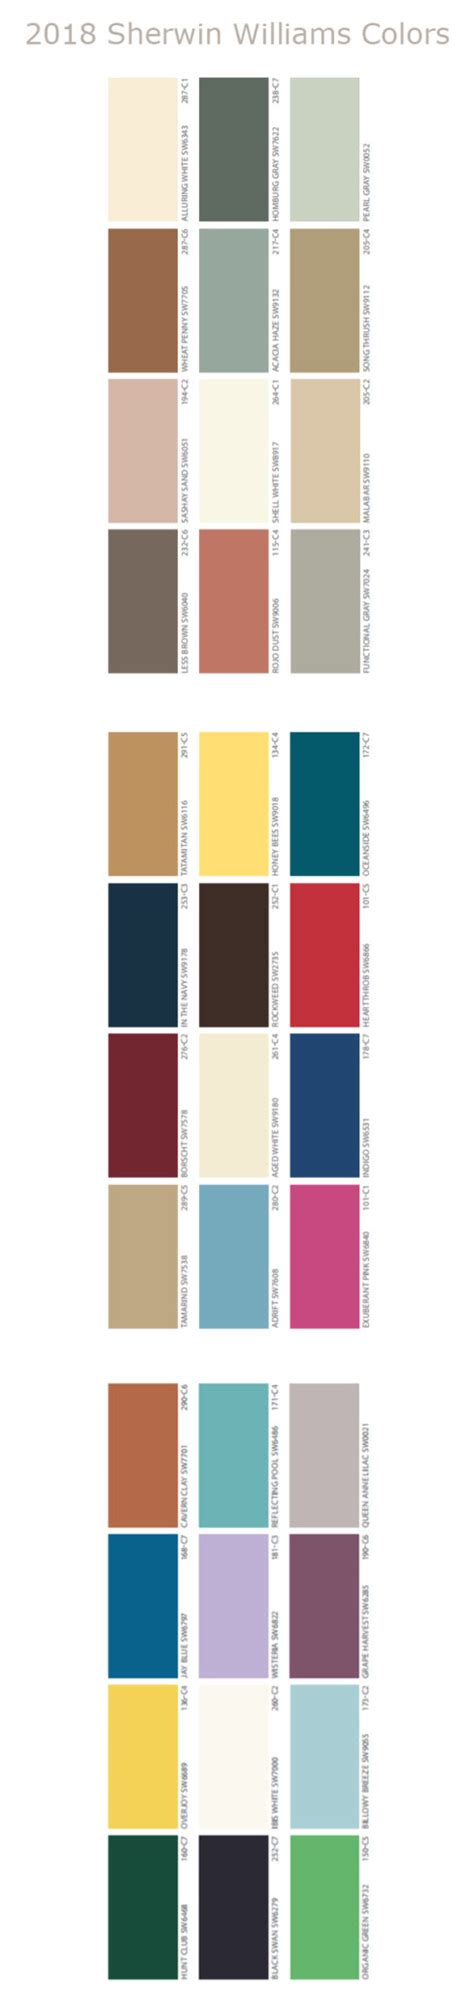 sherwin williams 2017 paint trends 28 paint color trends 2017 sherwin williams